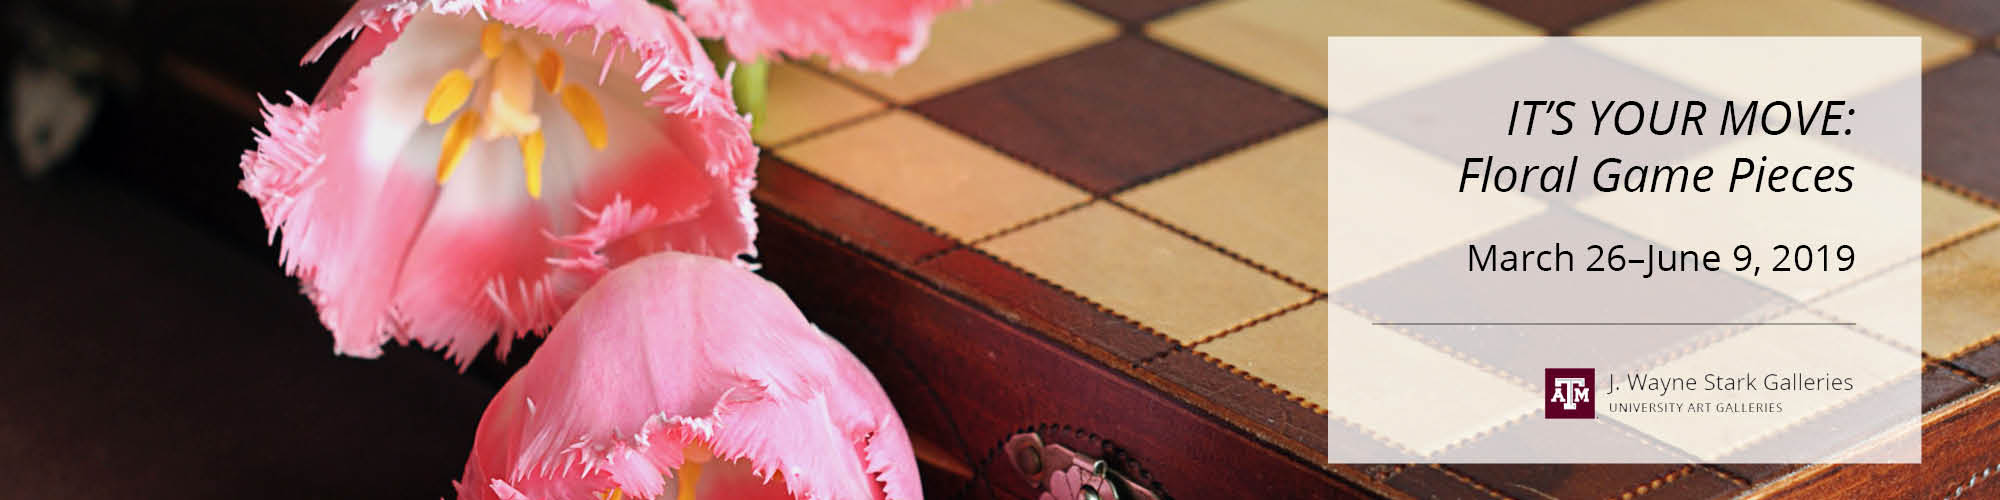 Pink flowers on a chess board